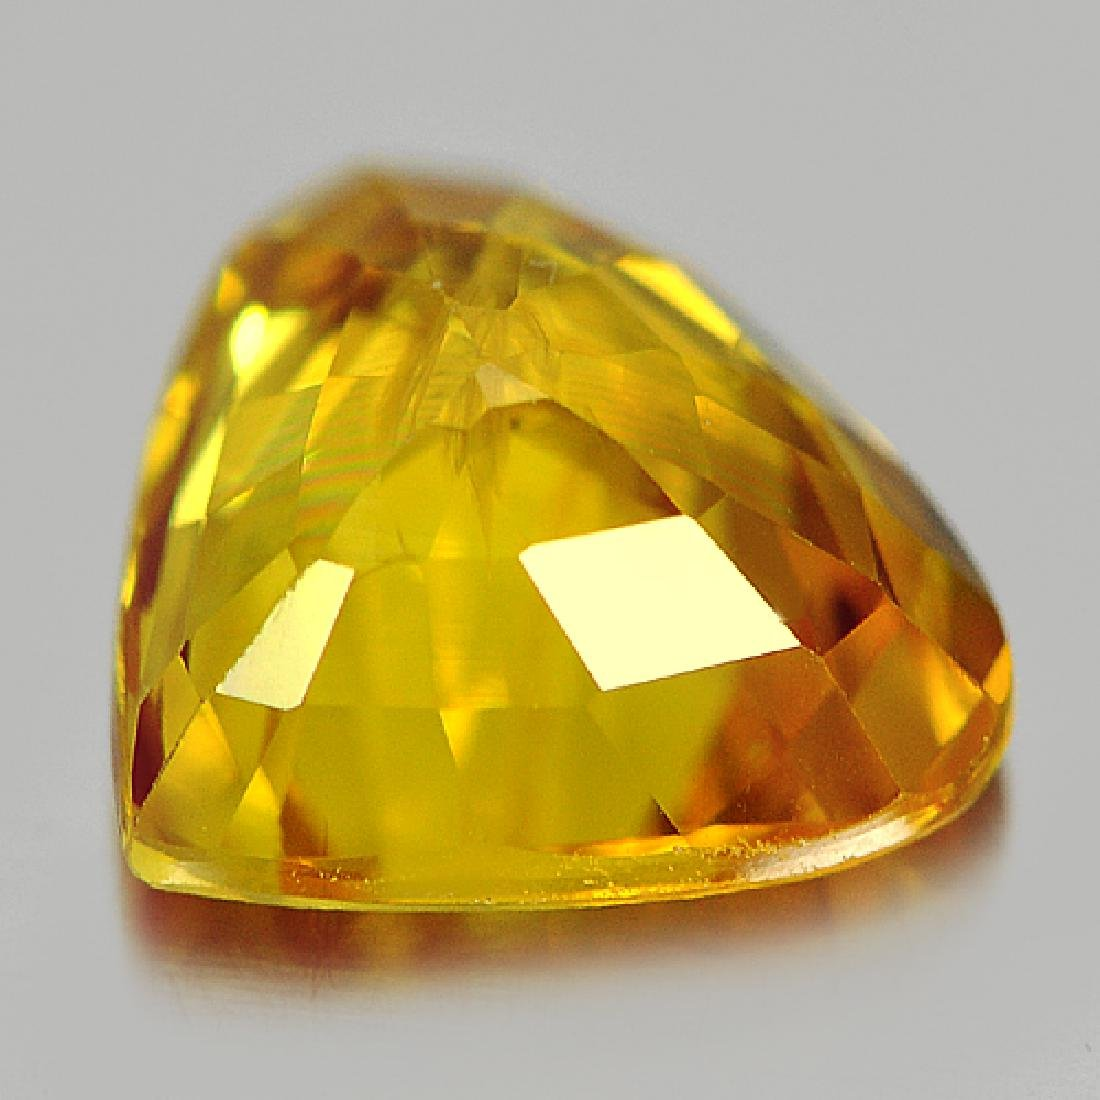 1.69 Ct Yellow Sapphire Pear Shape From Thailand - 3